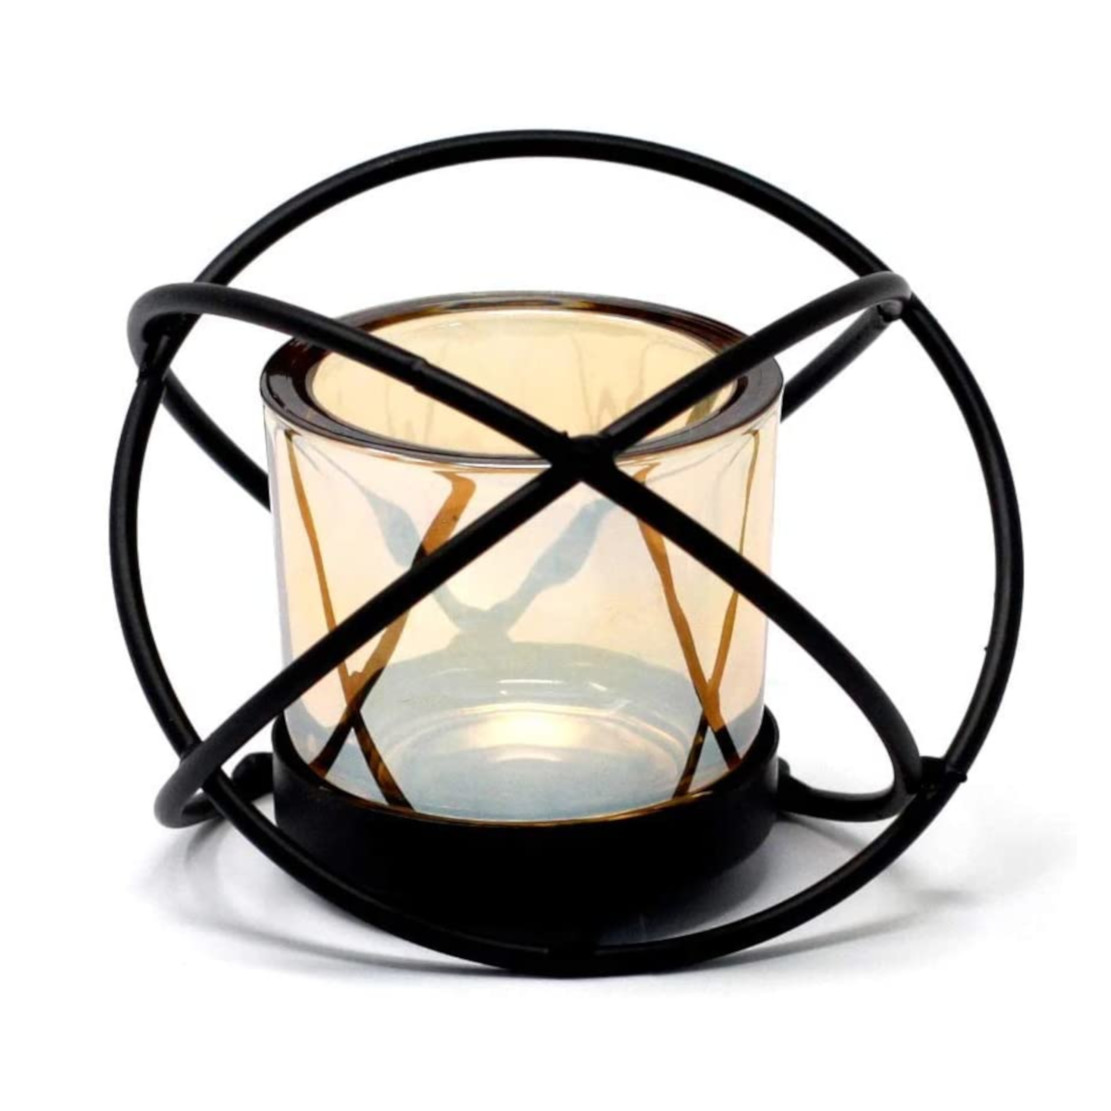 Ancient Wisdom Iron Candle Holder - Sphere